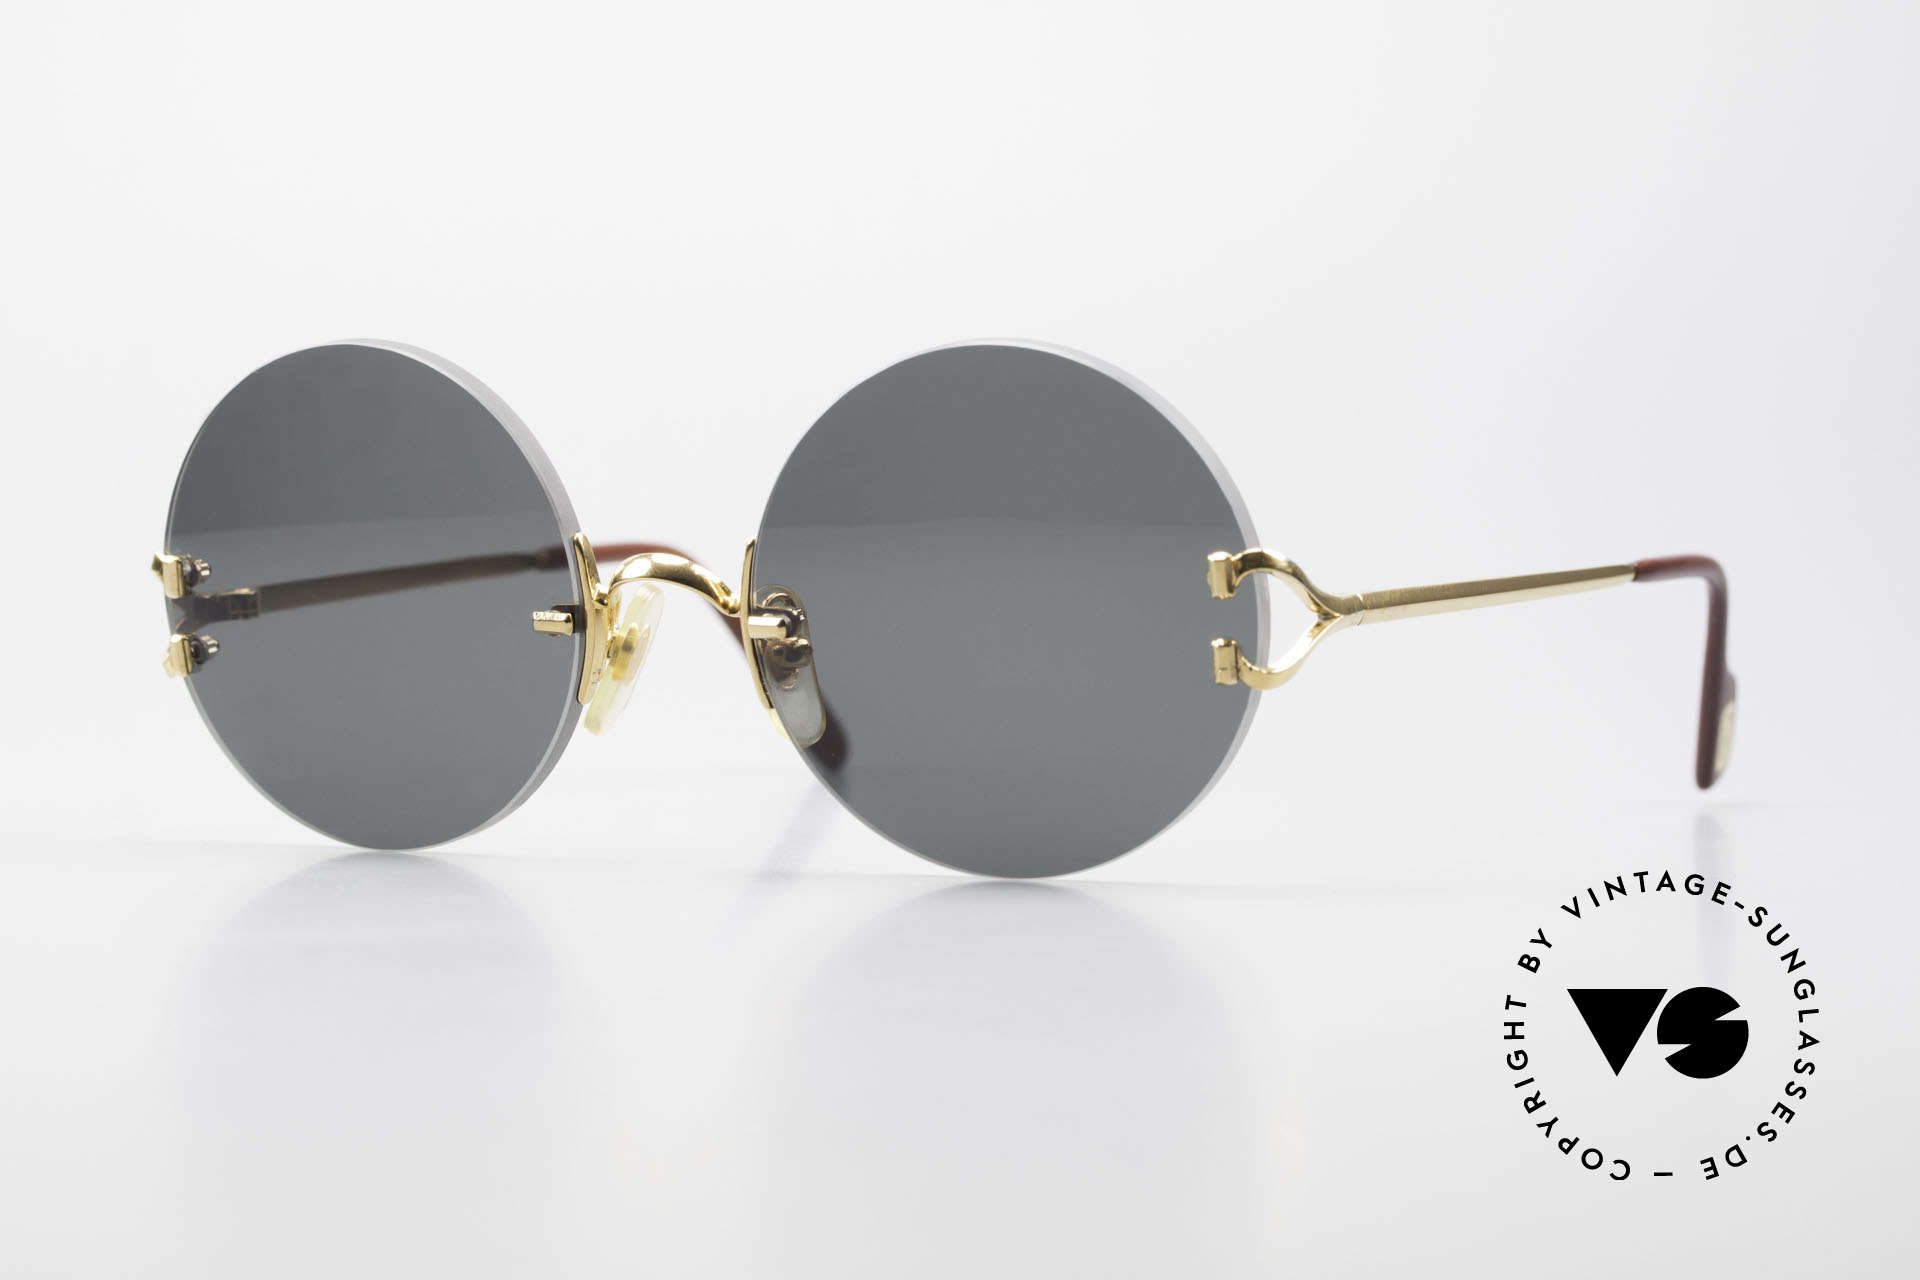 Cartier Madison Small Round Luxury Sunglasses, noble rimless CARTIER luxury sunglasses from 1997, Made for Men and Women